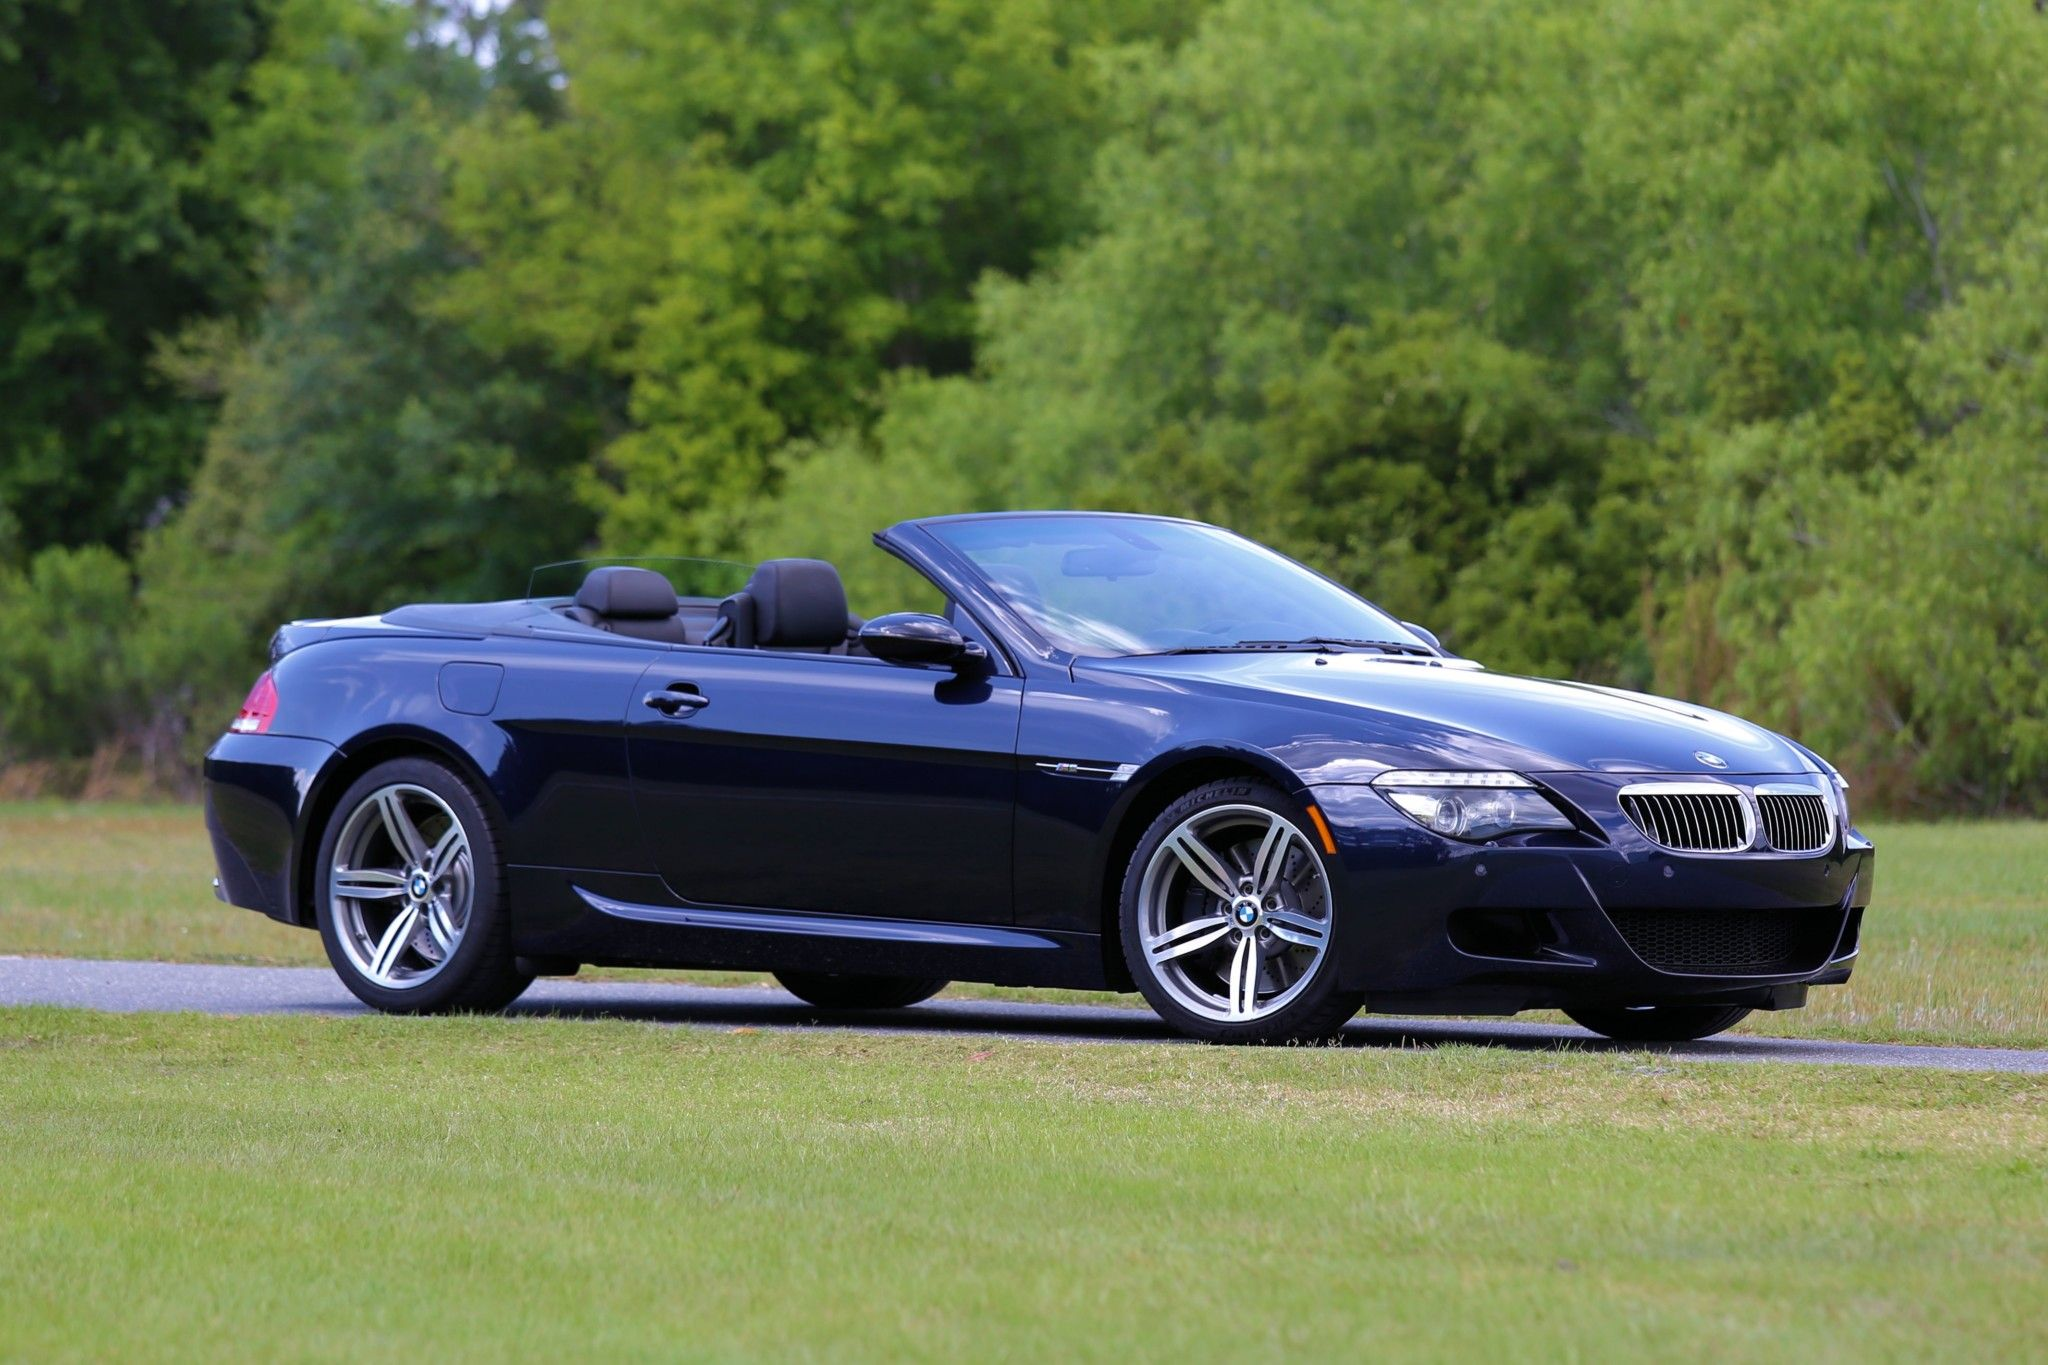 20kMile 2008 BMW M6 Convertible in 2020 Bmw, Bmw m6